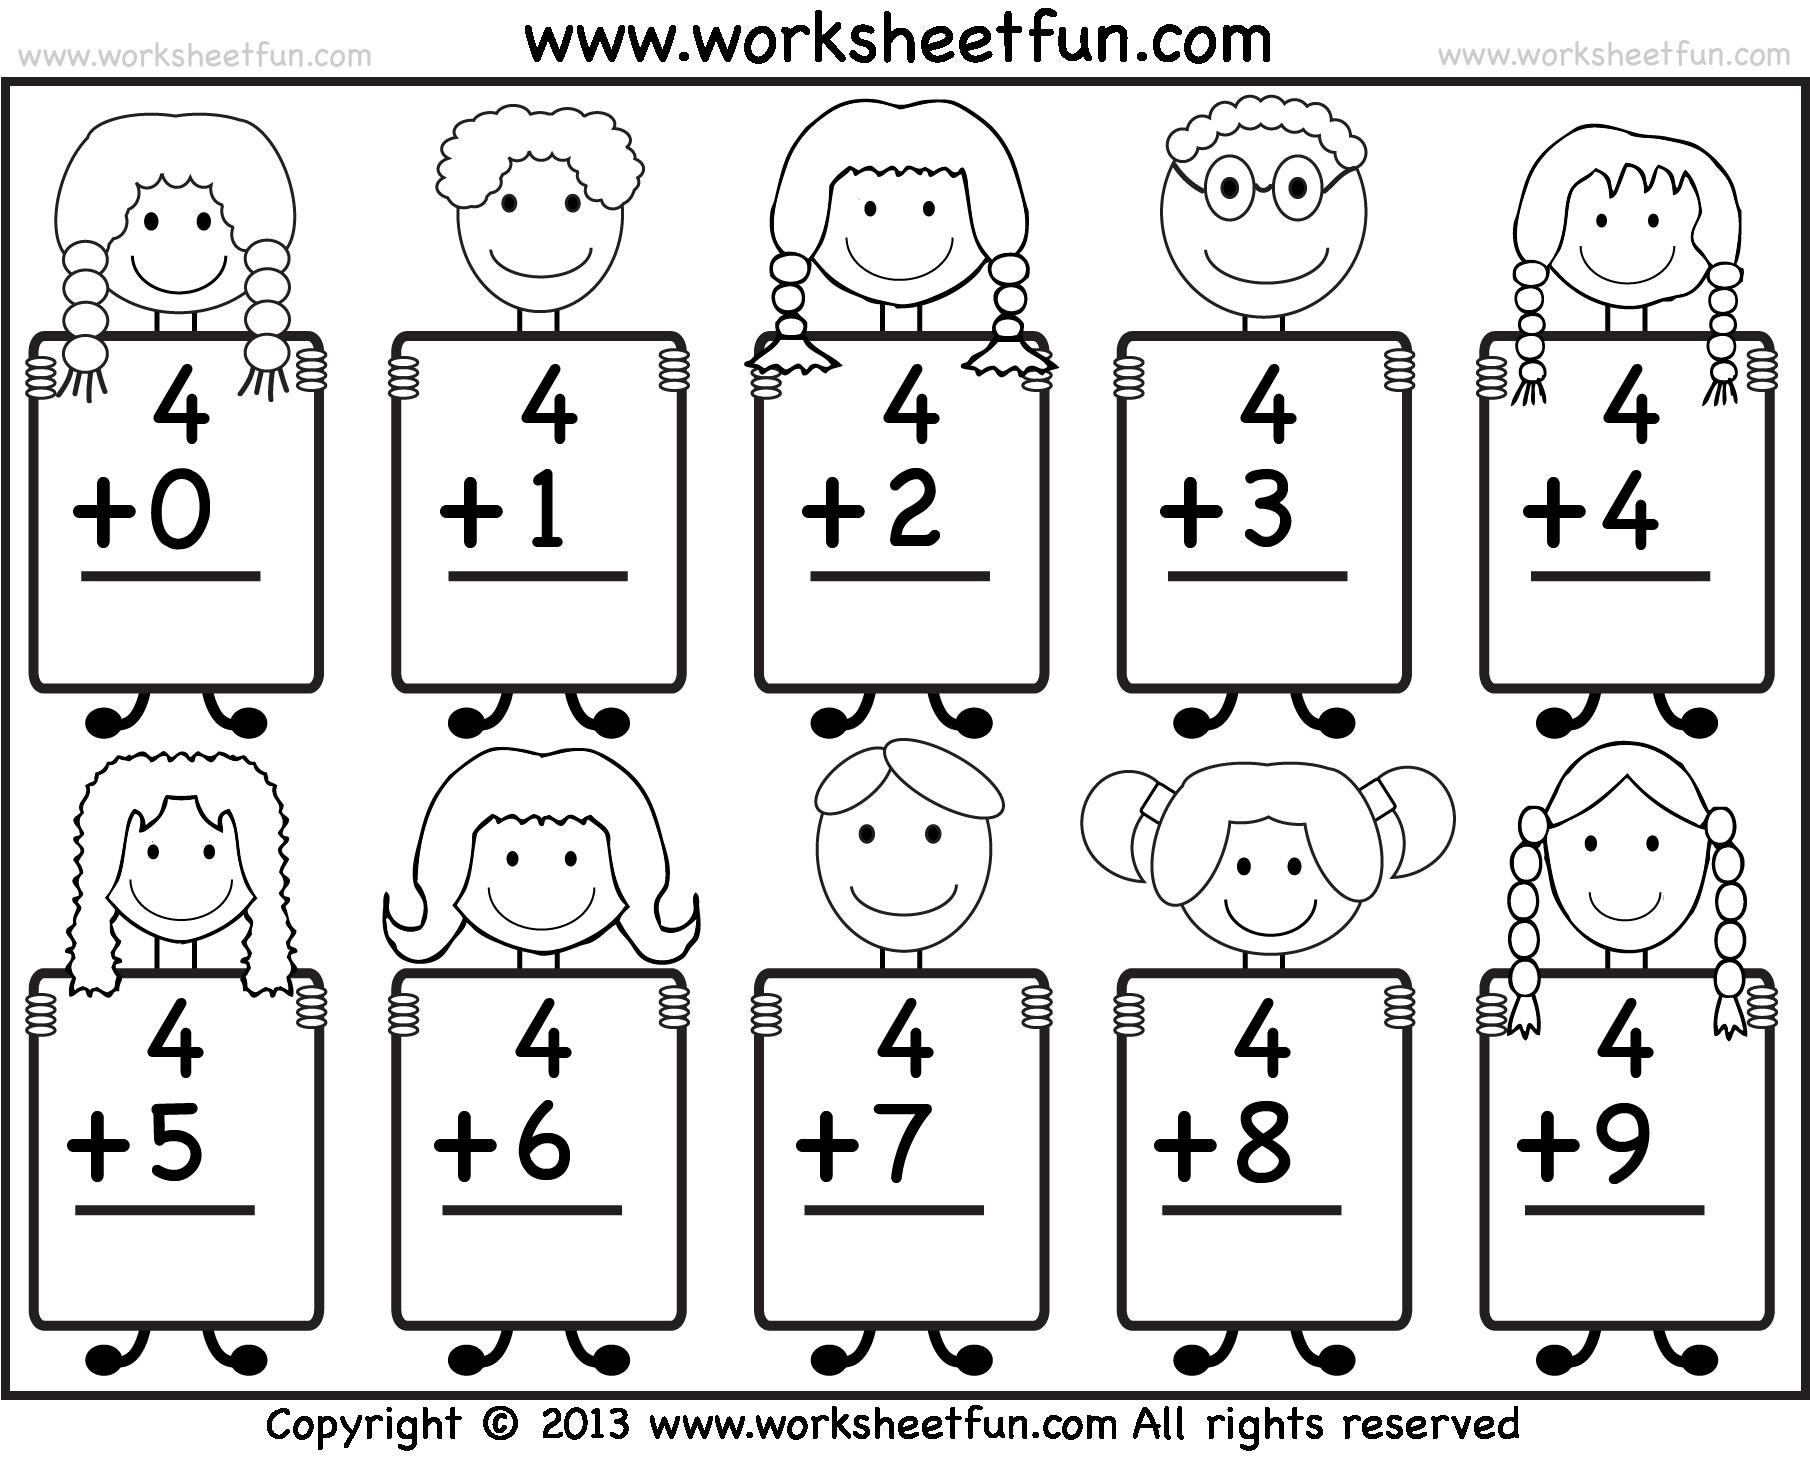 freeprintablemathworksheetsforkindergartenaddition1png – Printing Math Worksheets